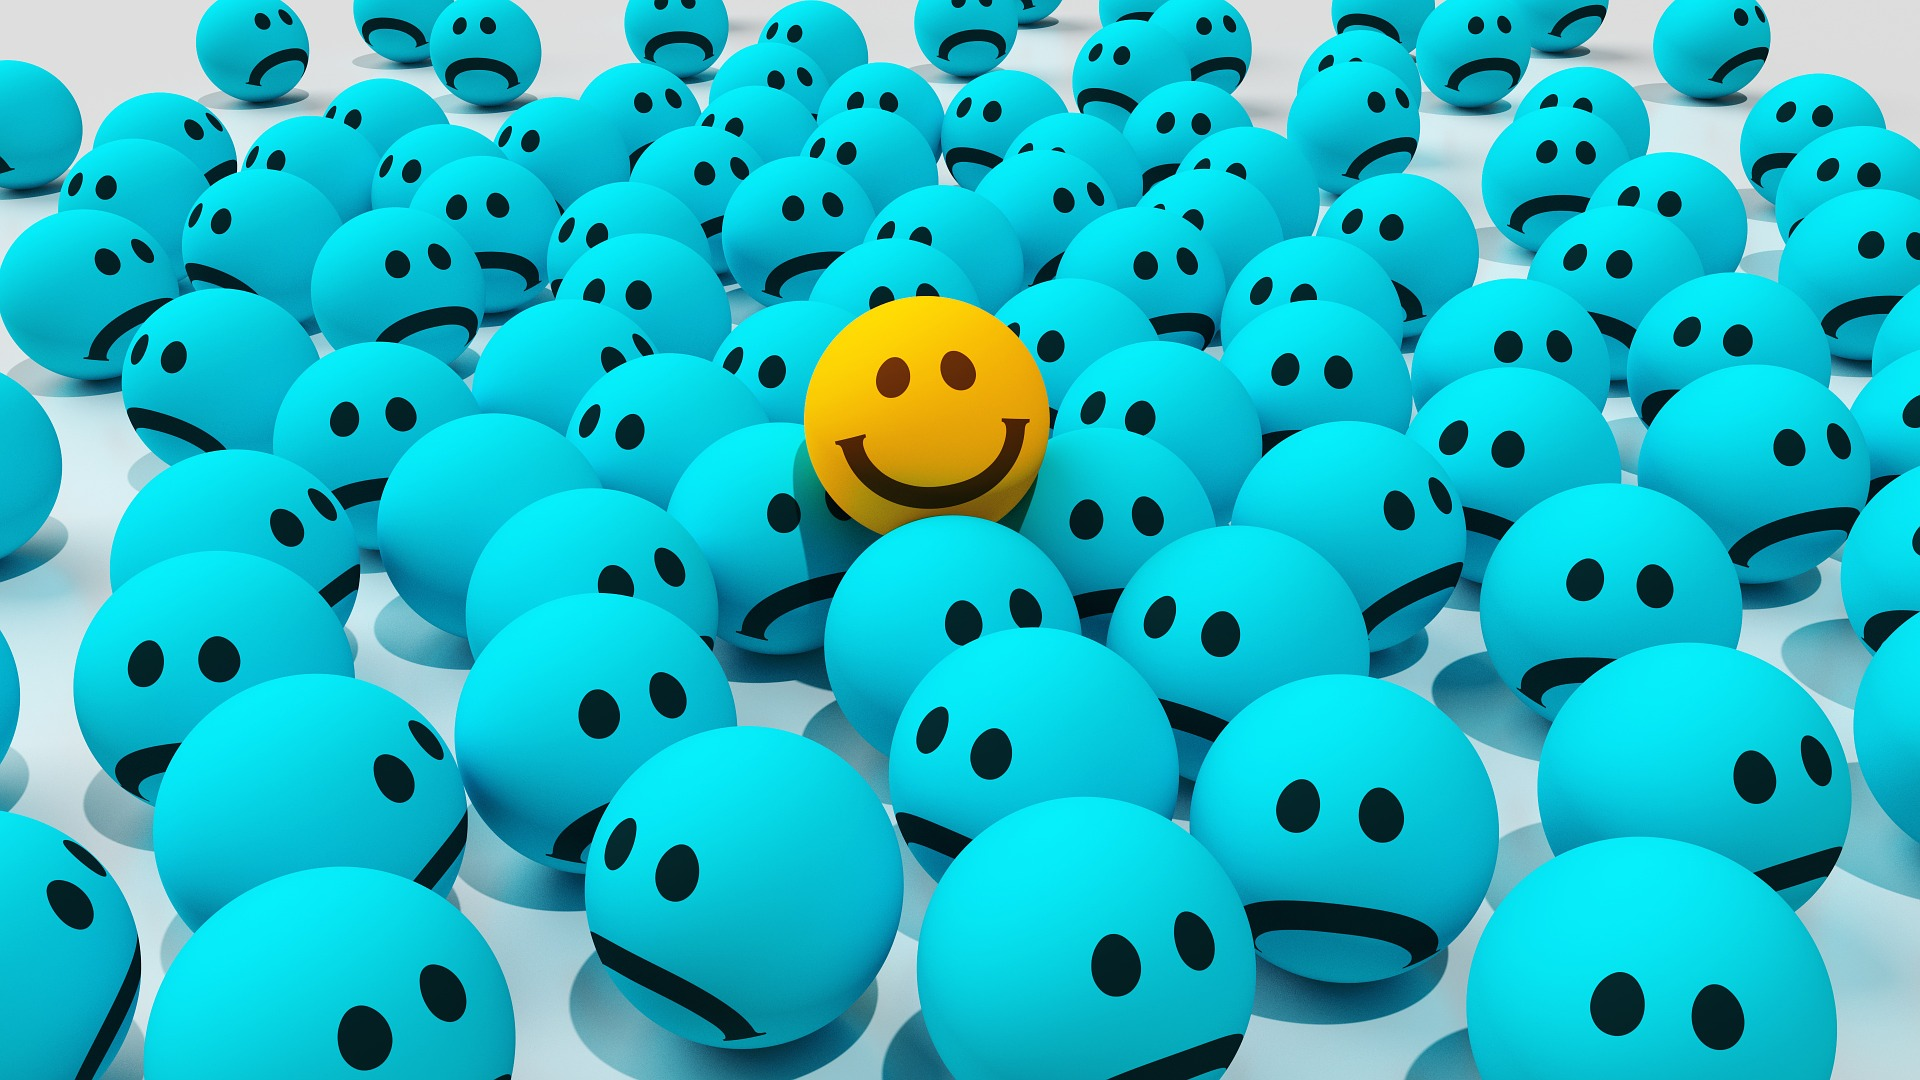 a bunch of blue frowny faces surrounding one yellow happy face